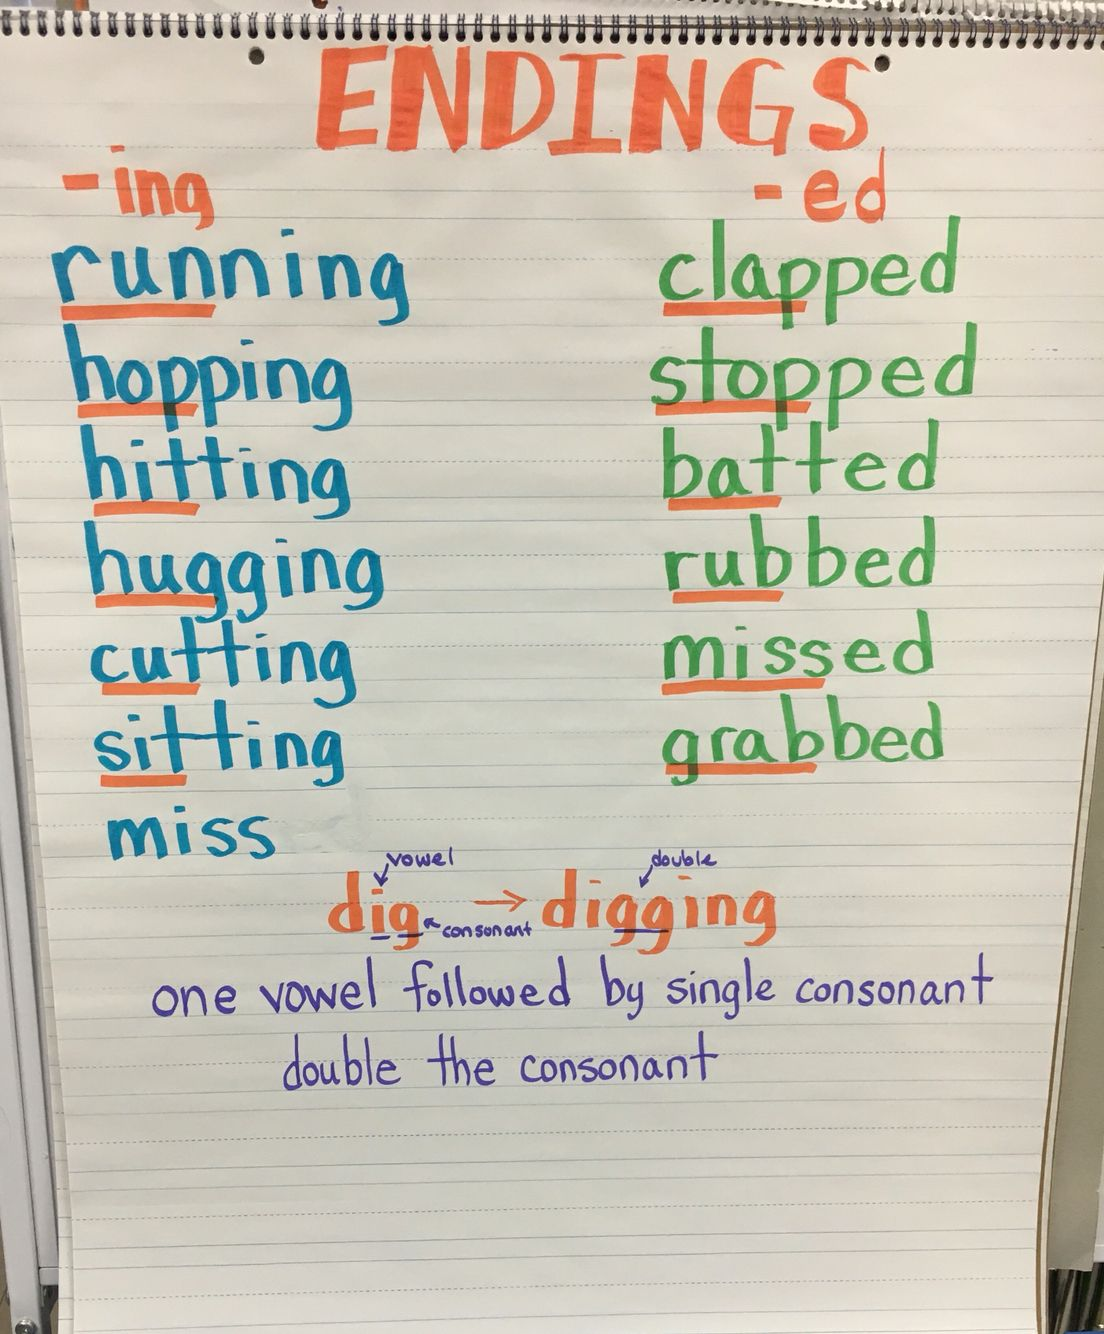 Ed And Ing Endings Suffixes When To Double The Consonant Anchor Chart Anchor Charts First Grade Suffixes Anchor Chart Anchor Charts [ 1334 x 1104 Pixel ]